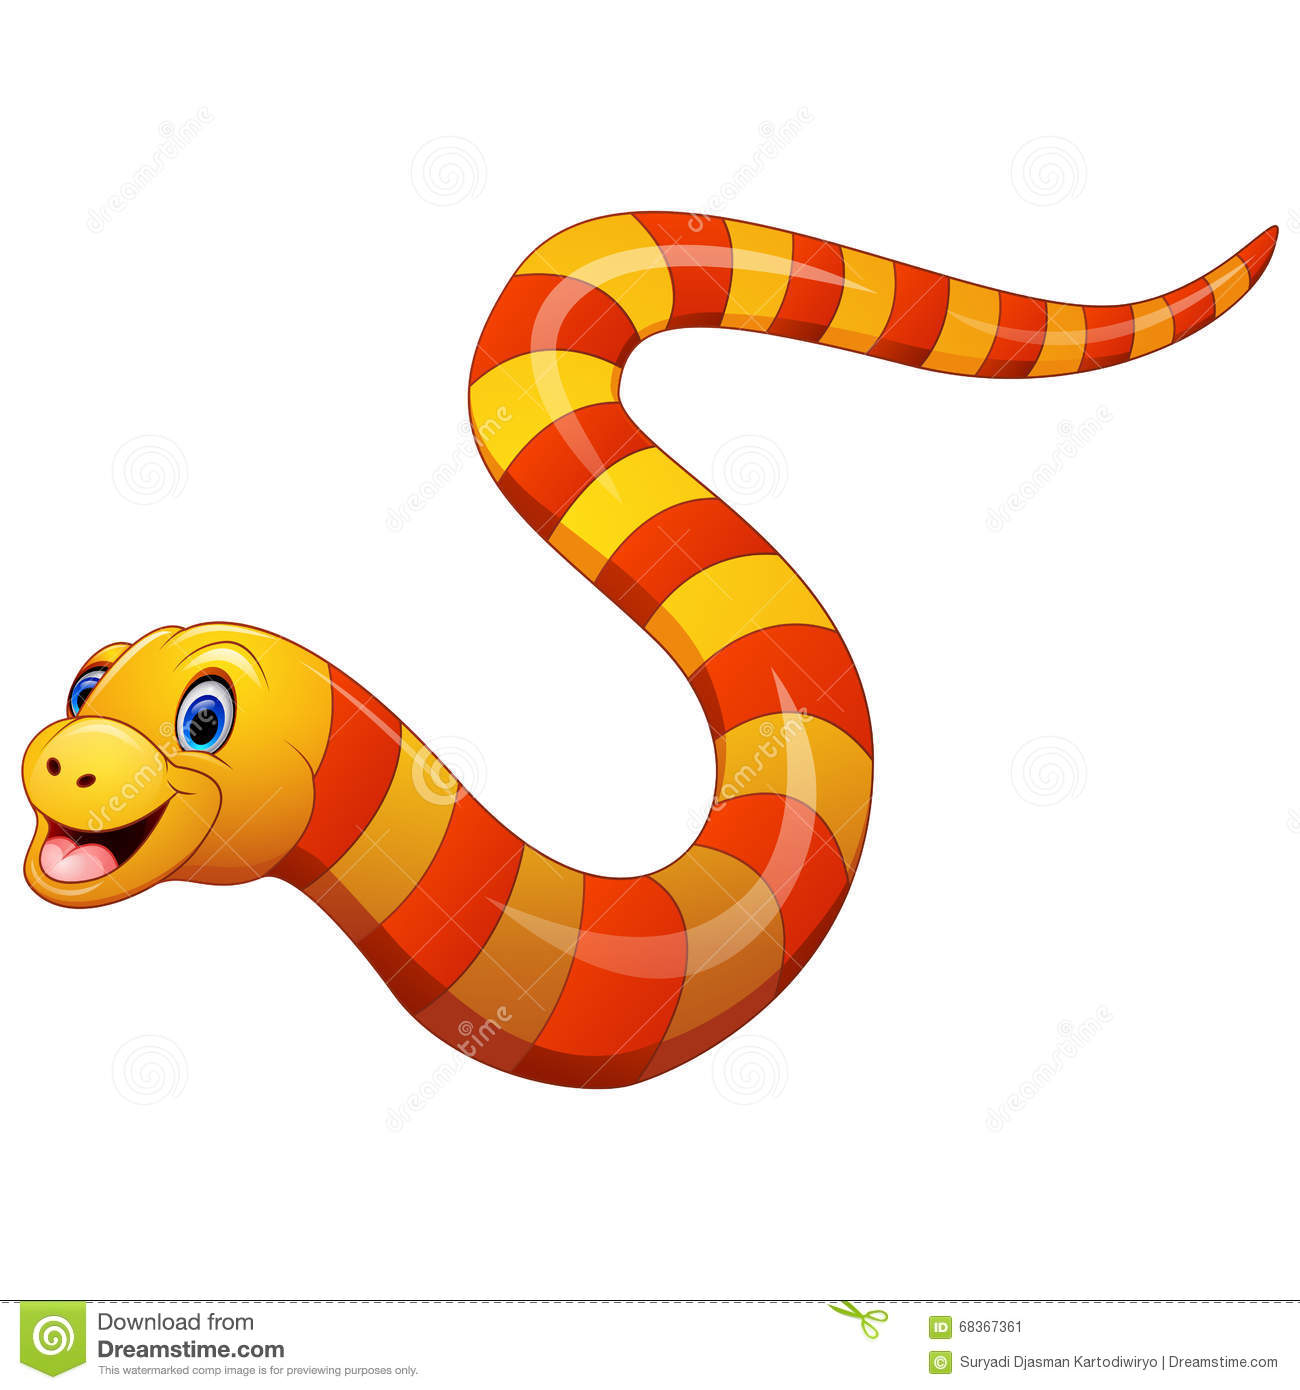 Illustration Of Sea Snake Stock Vector - Image: 68367361